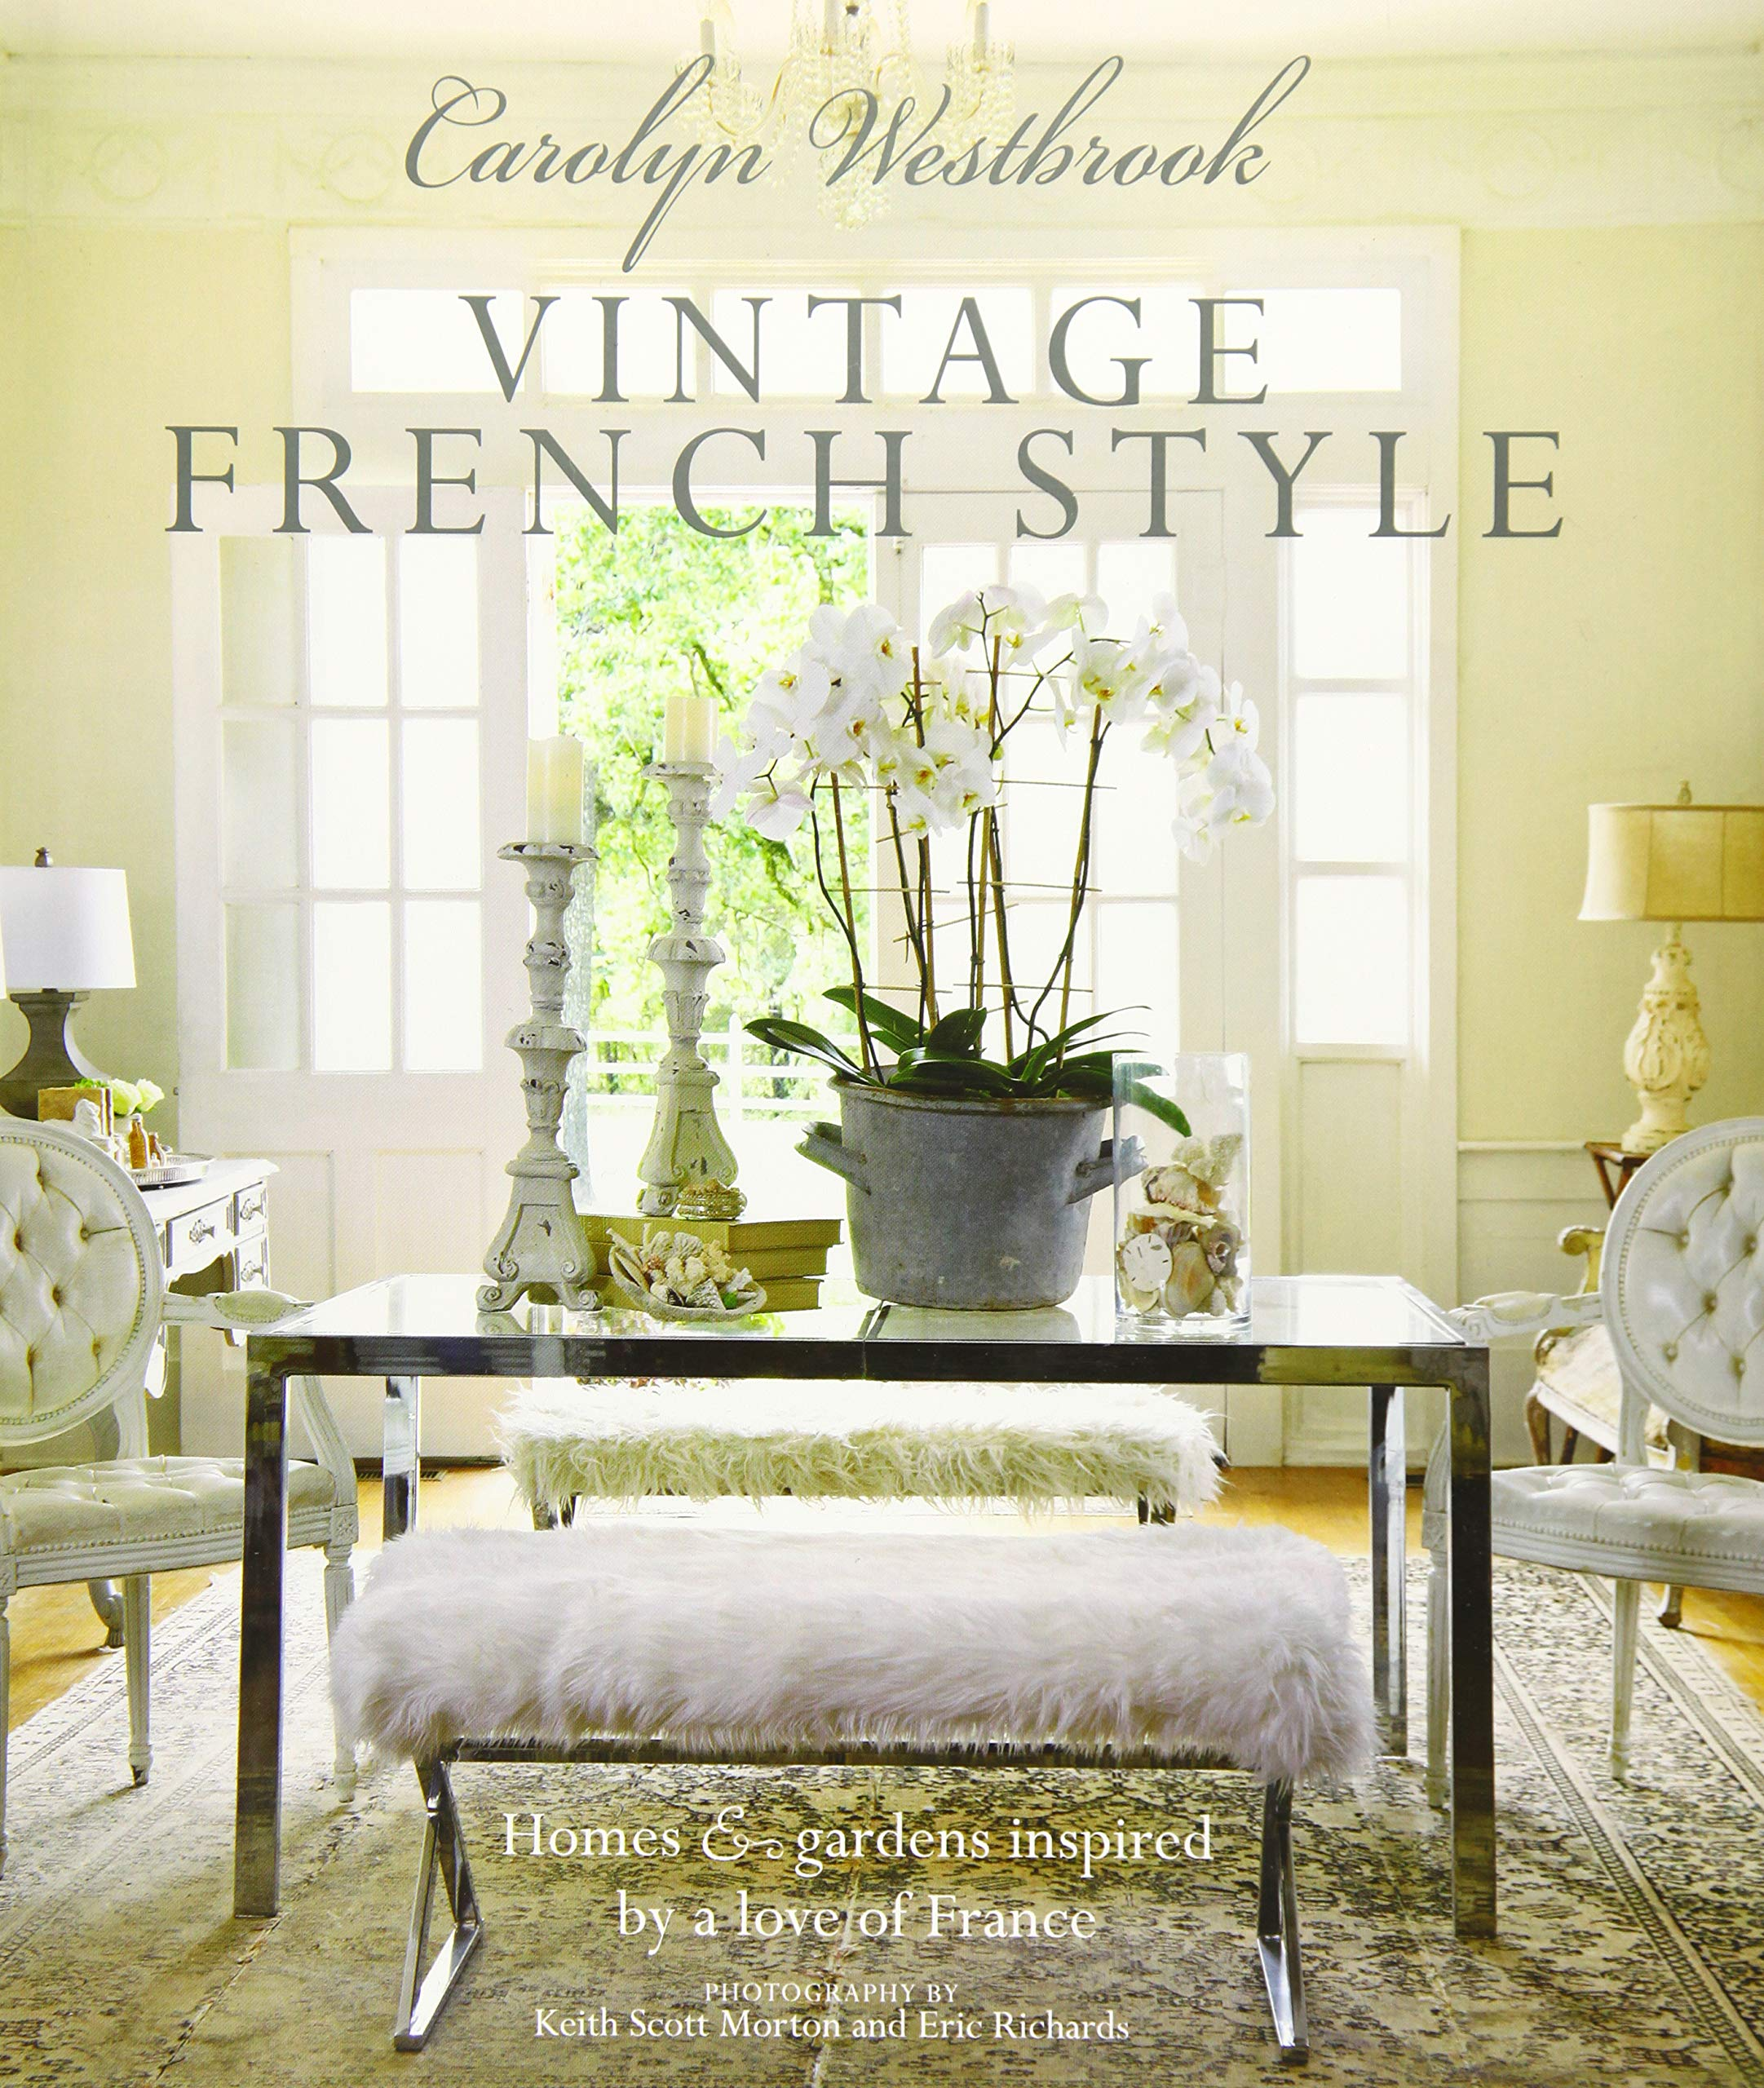 Carolyn Westbrook Vintage French Style Homes And Gardens Inspired By A Love Of France Westbrook Carolyn 9781782495482 Amazon Com Books